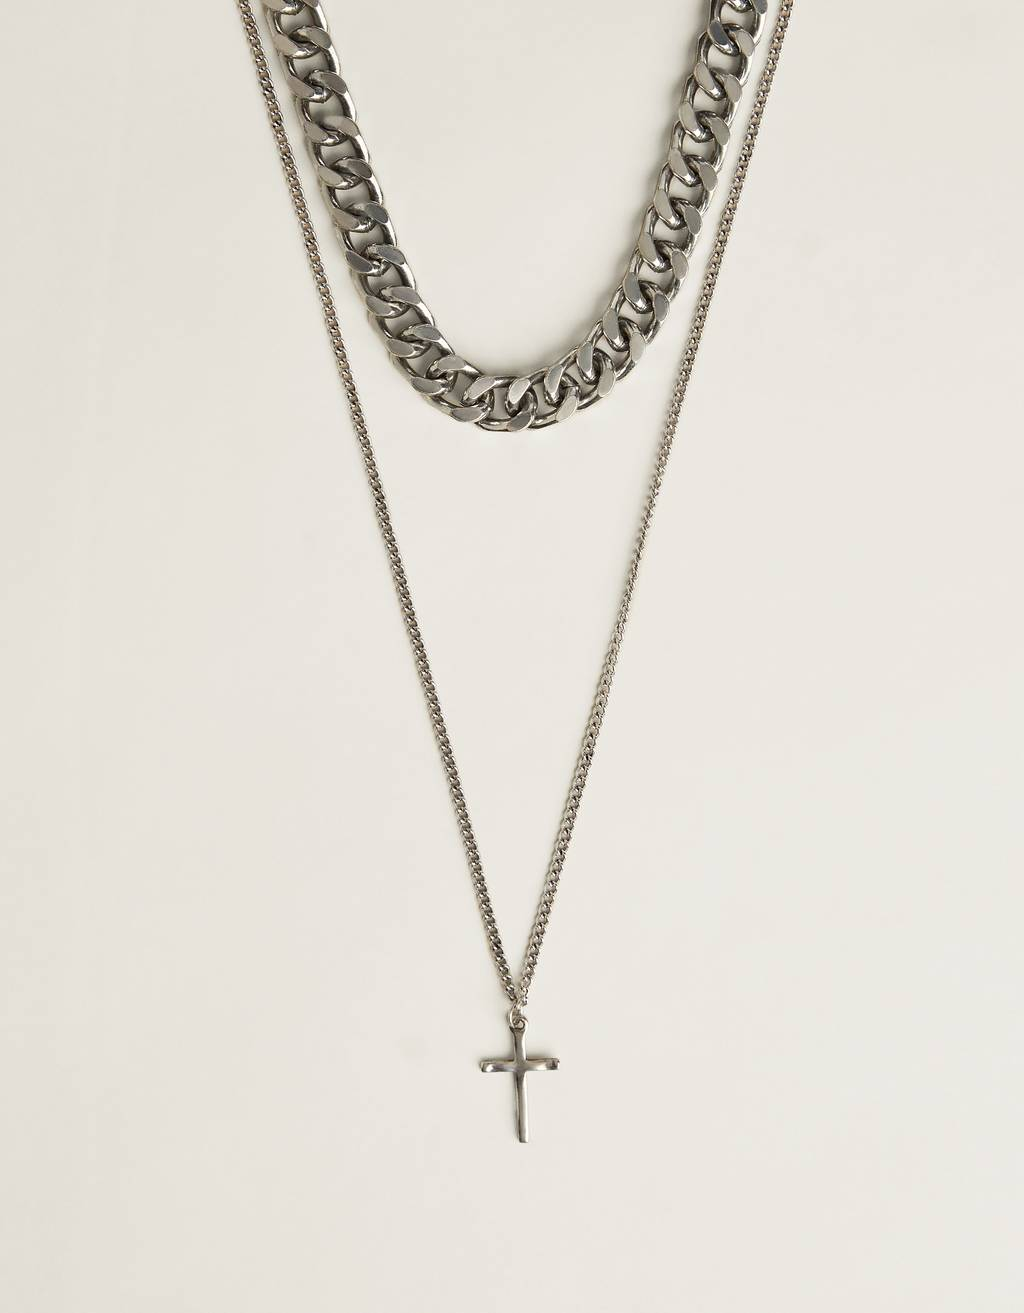 Chain necklace with a cross